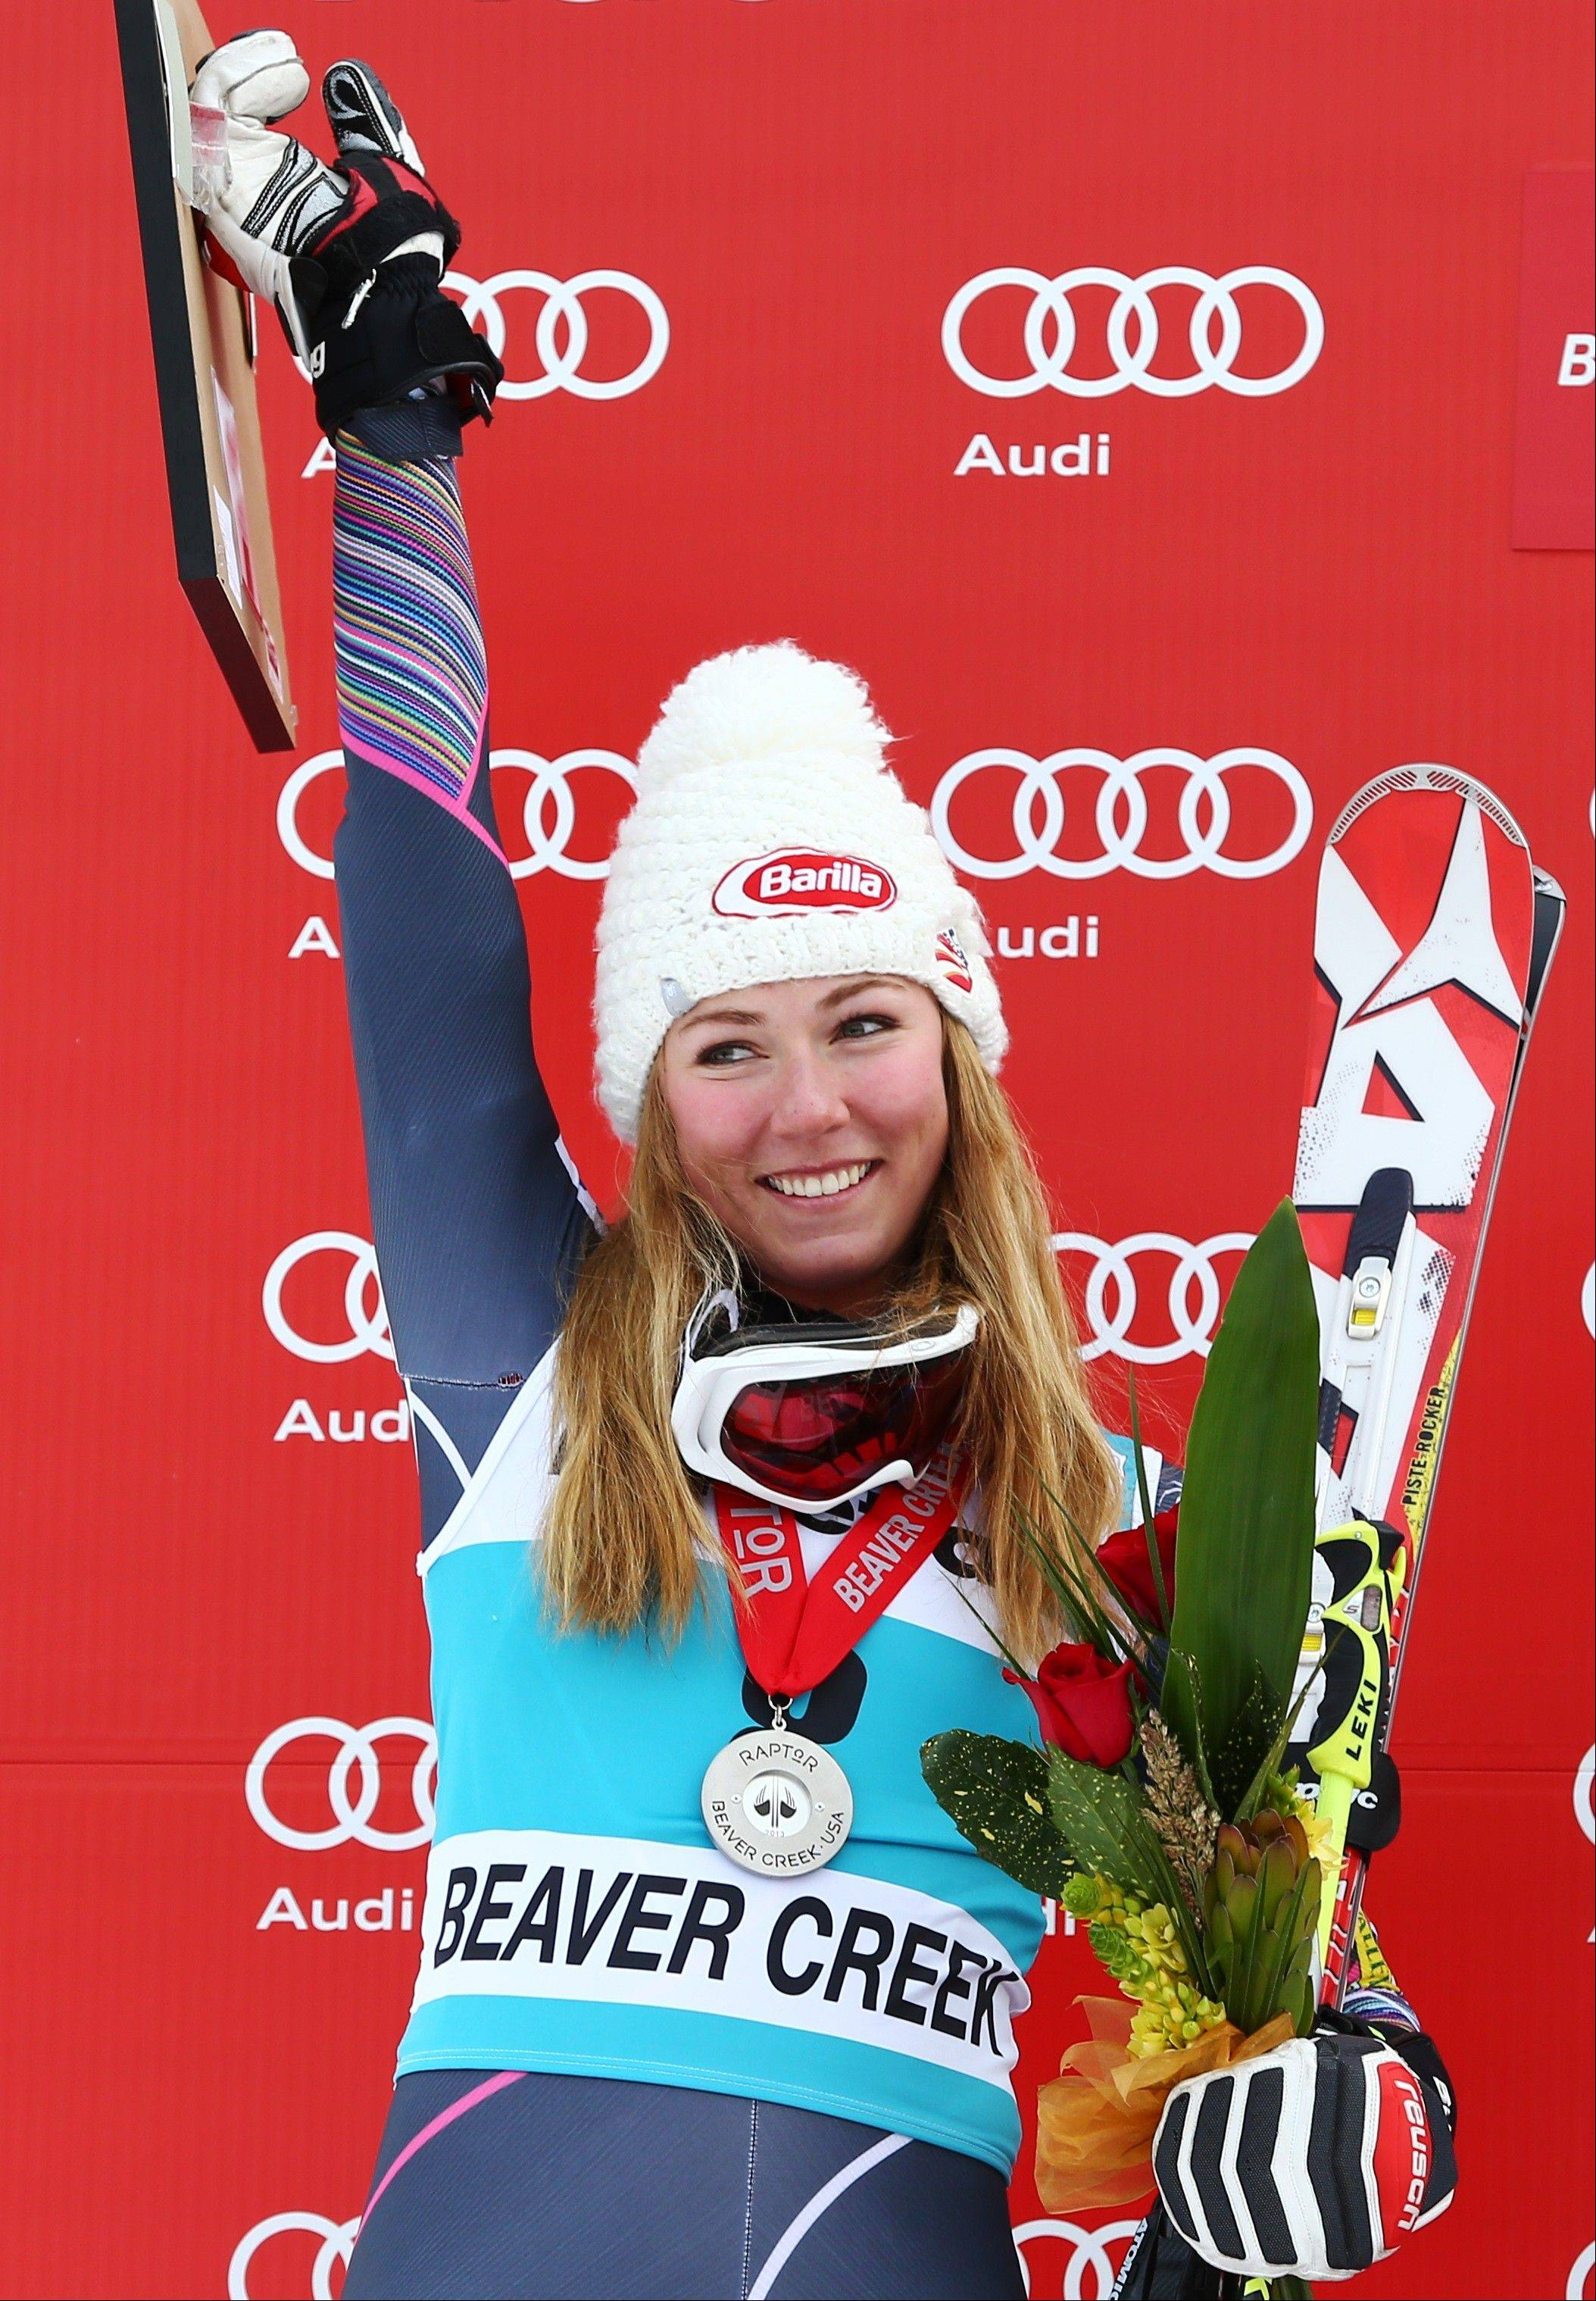 ADVANCE FOR WEEKEND OF JAN. 11-12 - FILE - In this Dec. 1, 2013, file photo, Mikaela Shiffrin smiles while standing on the podium after the women's World Cup giant slalom skiing event in Beaver Creek, Colo. The 18-year-old Shiffrin could very well be the face of the Sochi Olympics, especially now that Lindsey Vonn is out with a knee injury. (AP Photo/Alessandro Trovati, File)